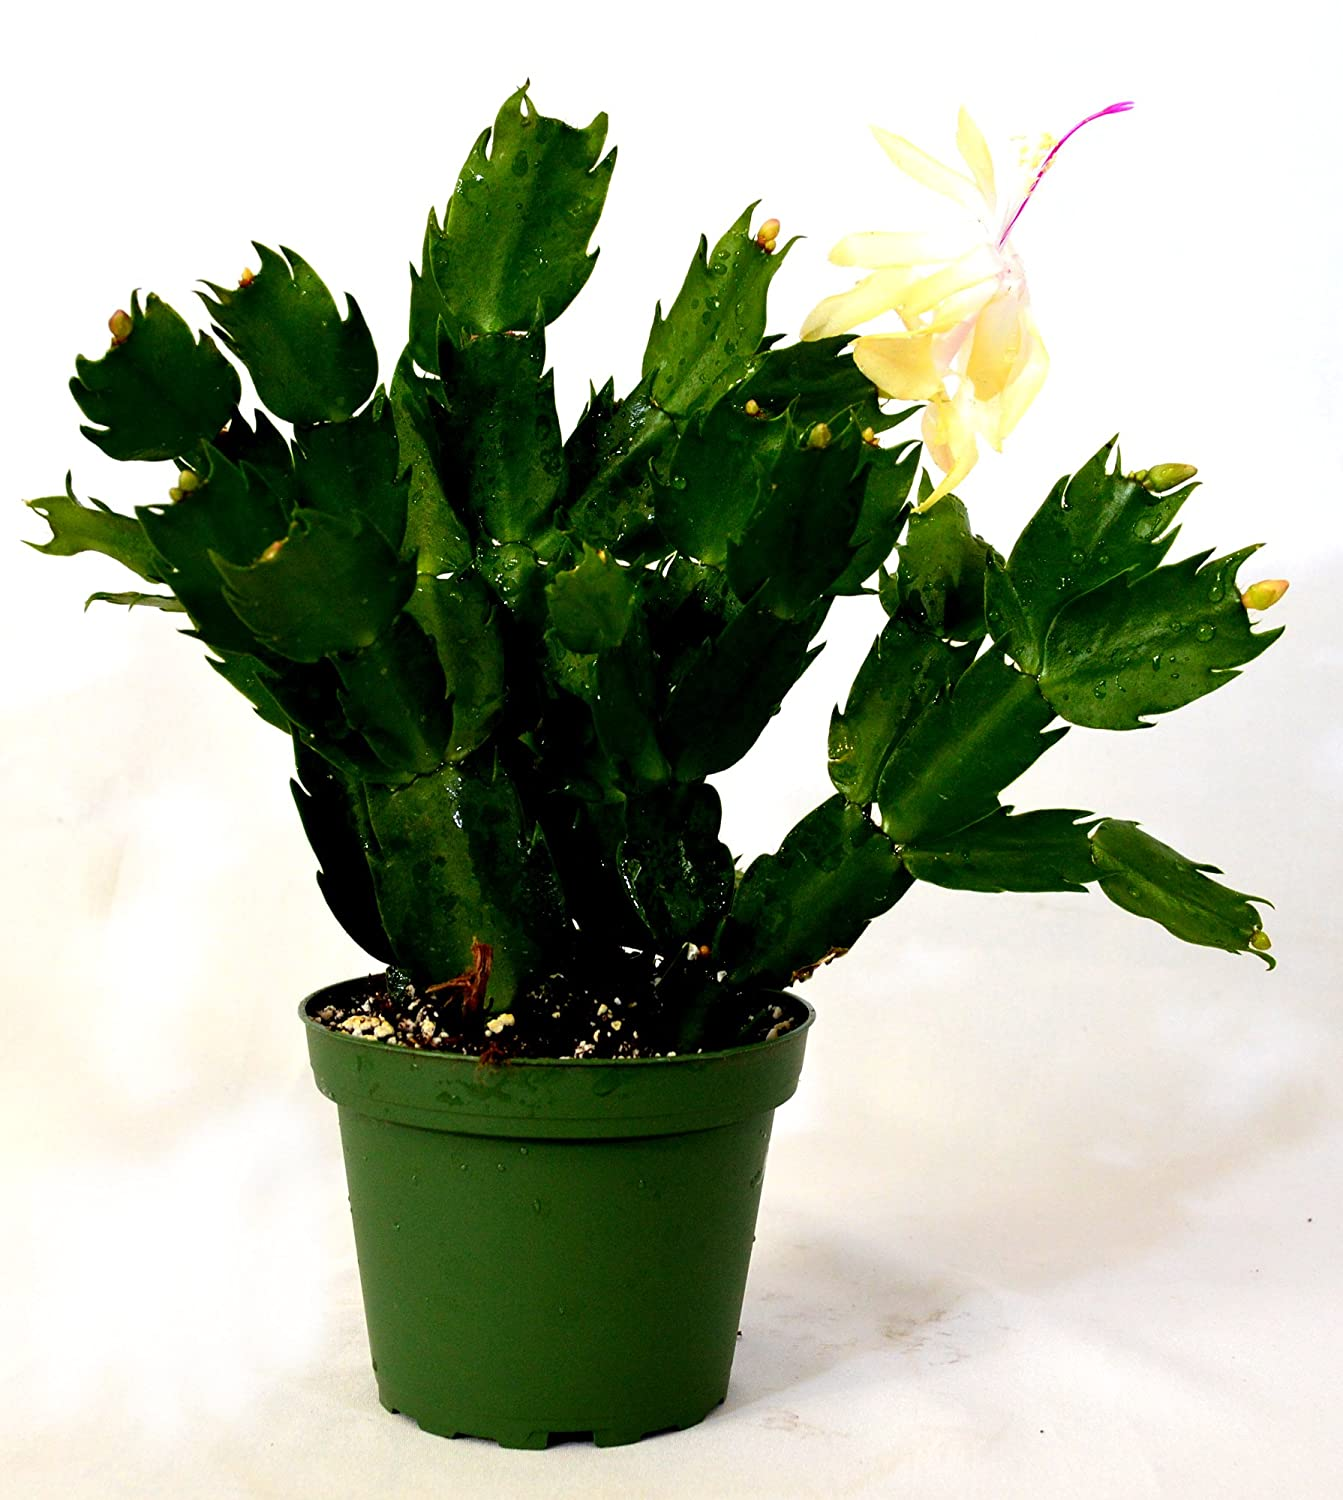 9greenbox Rare Yellow Christmas Cactus Plant Zygocactus 4 Pot Com Grocery Gourmet Food